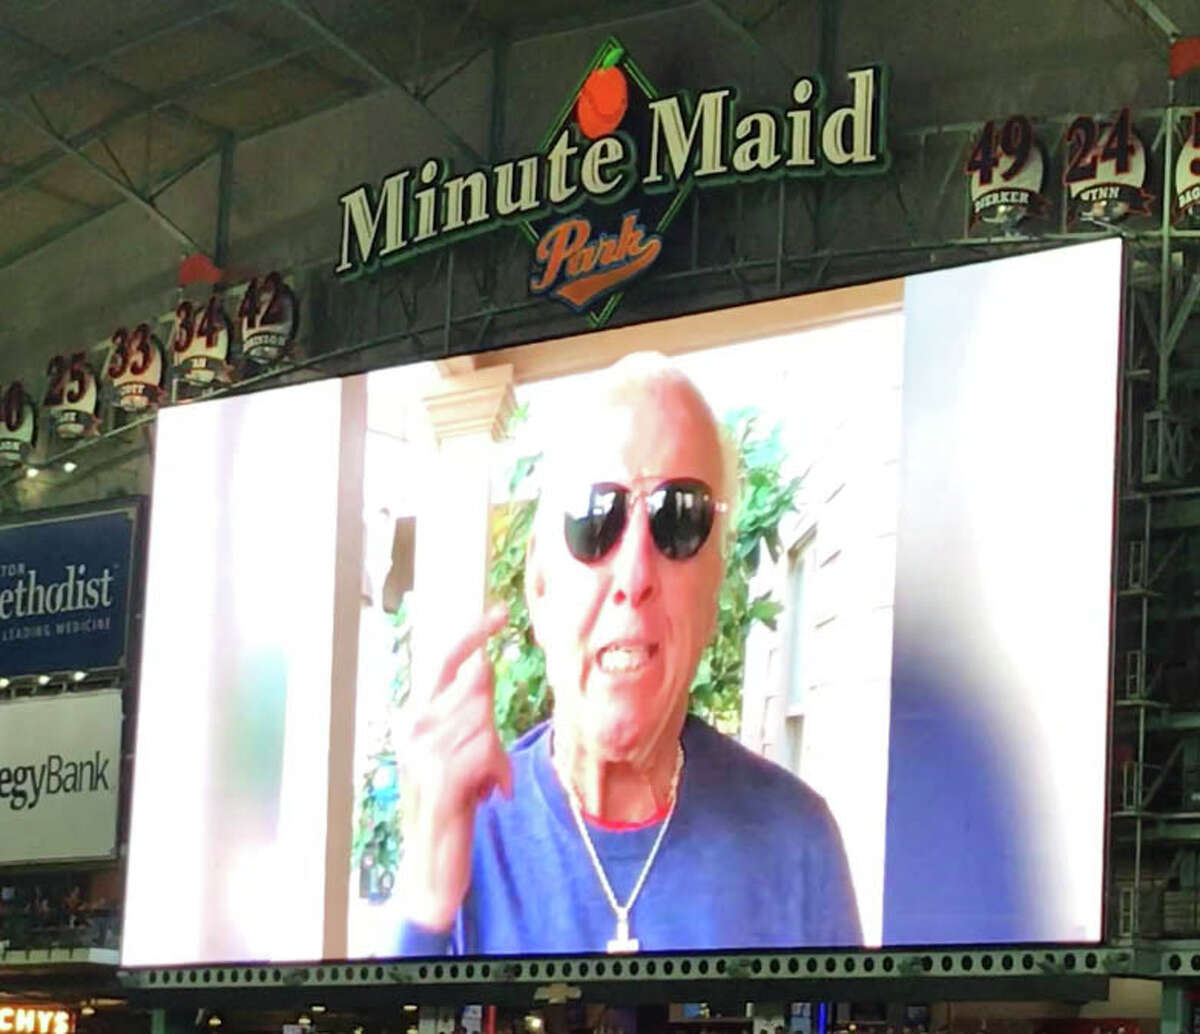 PHOTOS: Ric Flair impersonators at the Astros game, and the real Ric Flair at other sporting events around the country The Houston Astros had Ric Flair record a video that they played before Game 7 of their American League Championship Series against the Yankees on Saturday, Oct. 21, 2017 at Minute Maid Park. Browse through the photos above for a look at Ric Flair impersonators at the Astros game, and the real Ric Flair at other sporting events around the country.